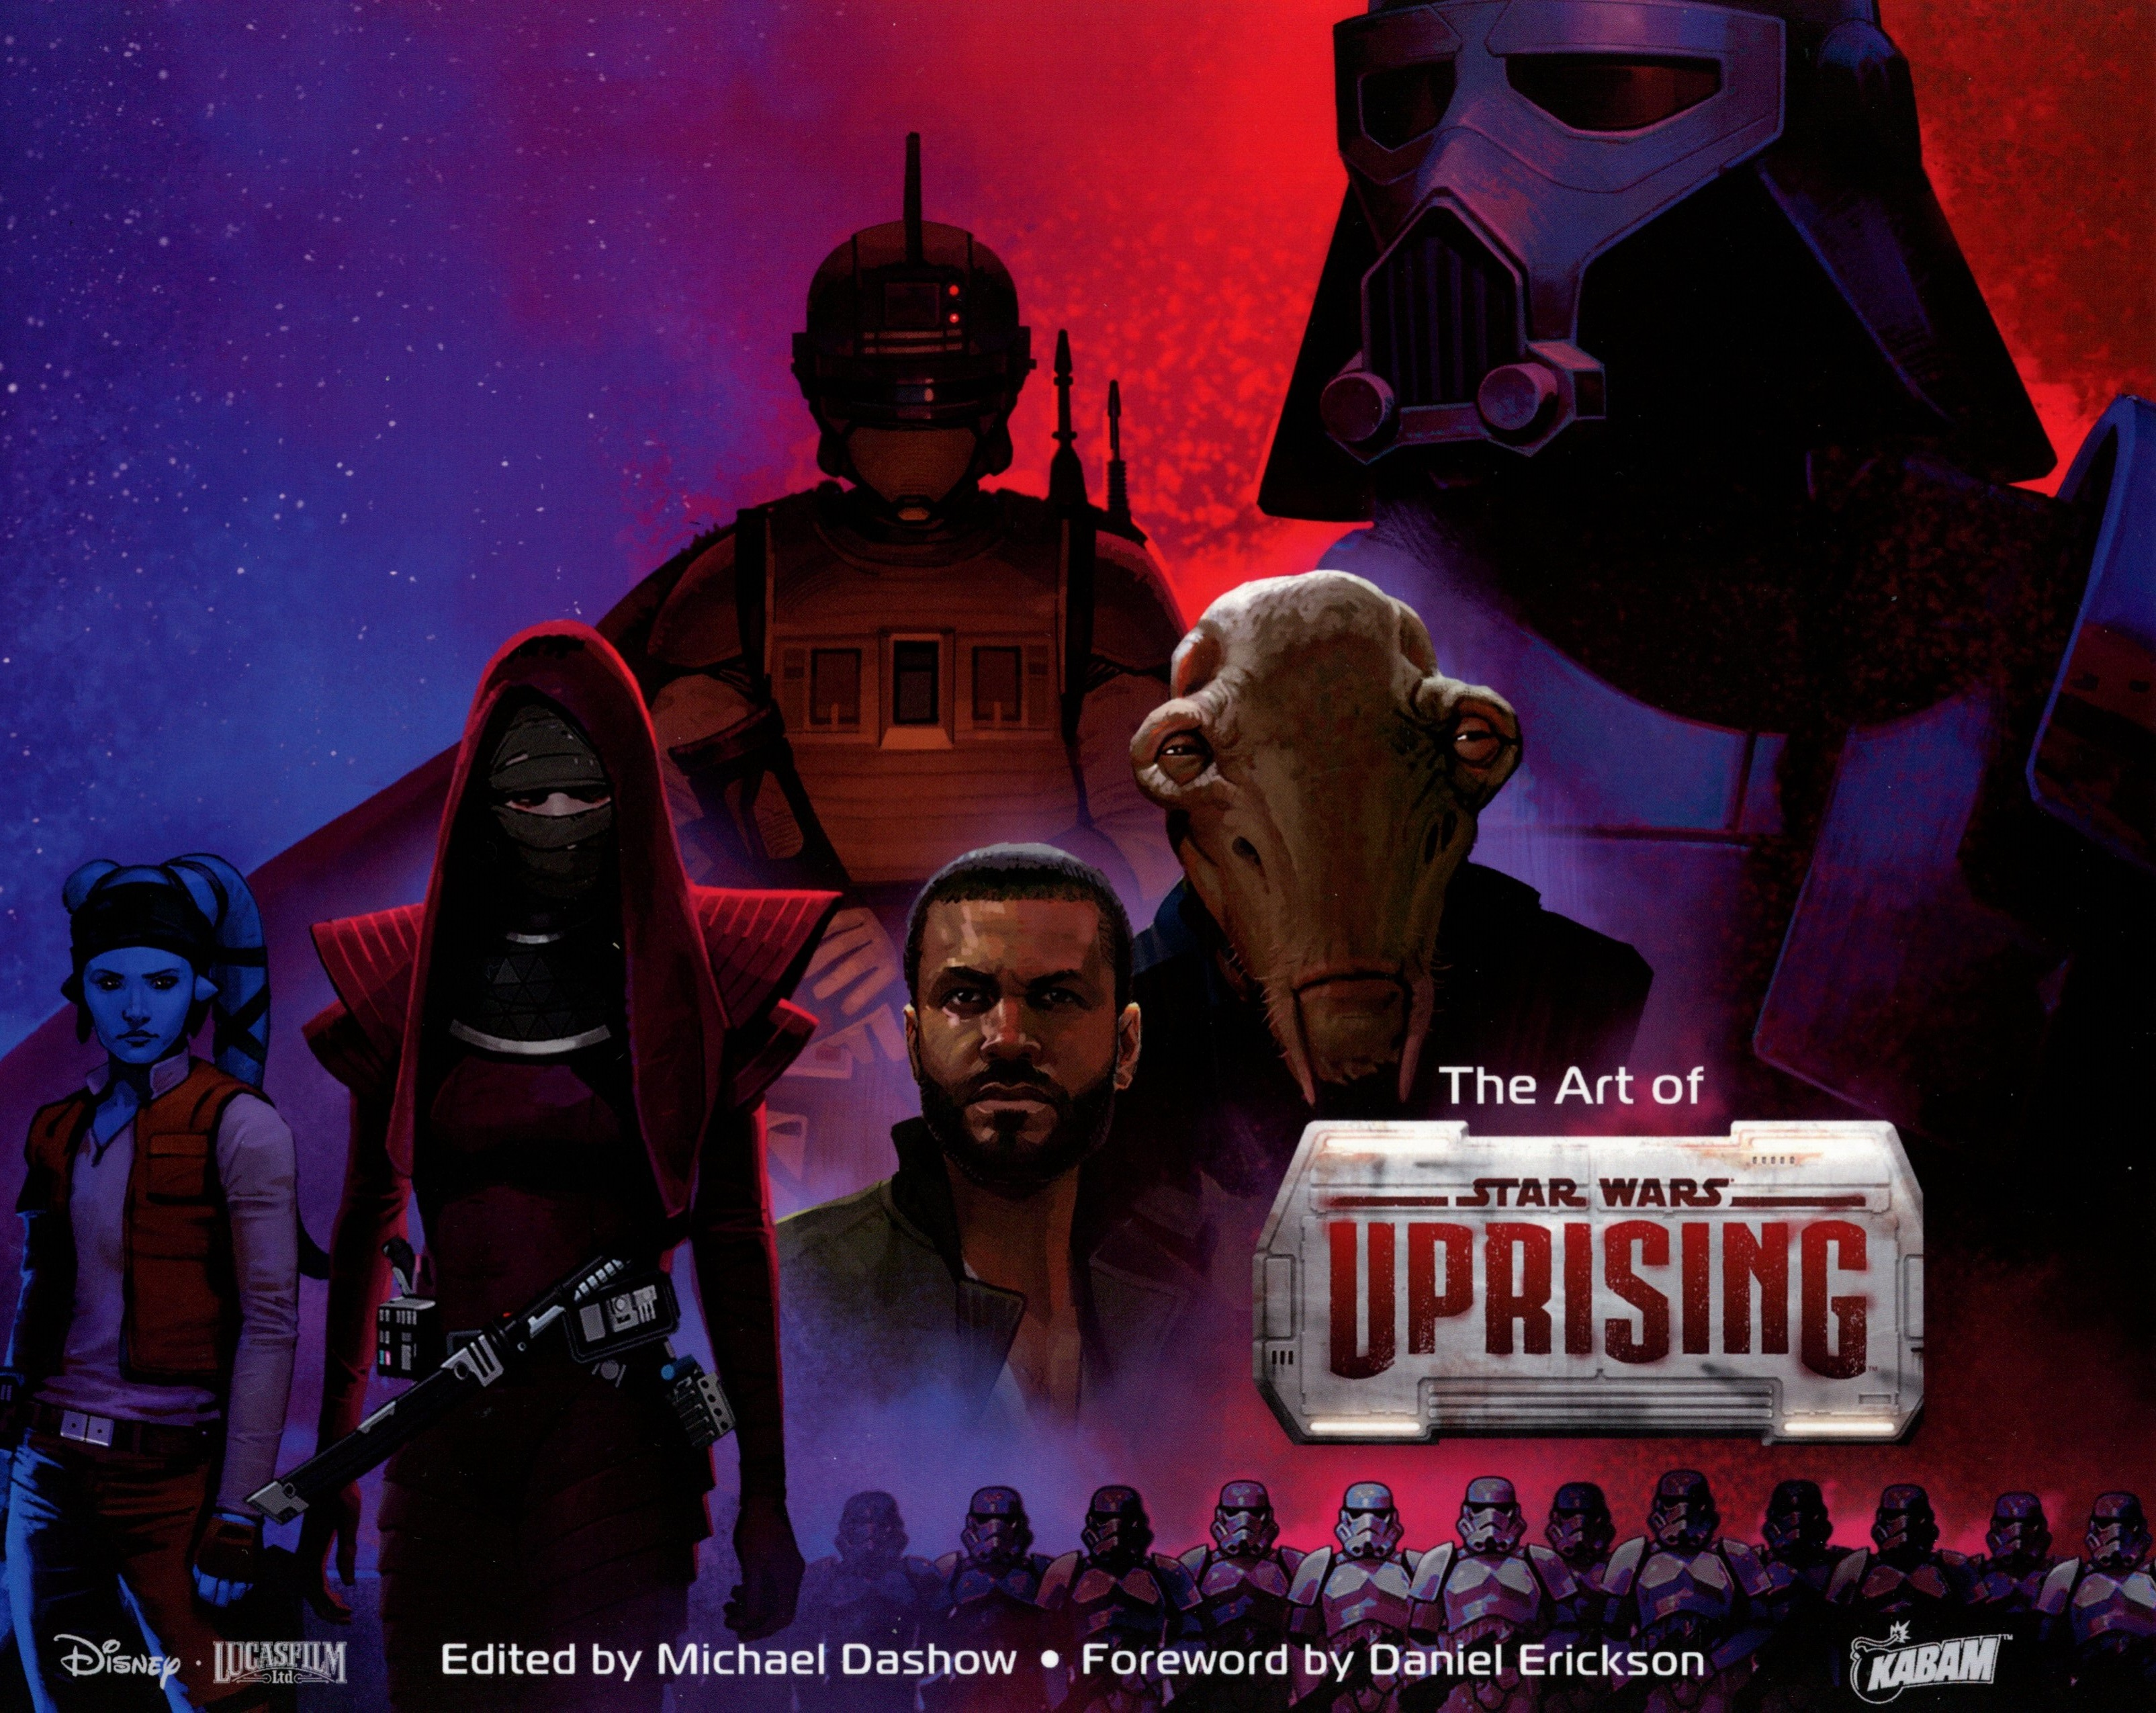 The Art of Star Wars Uprising cover